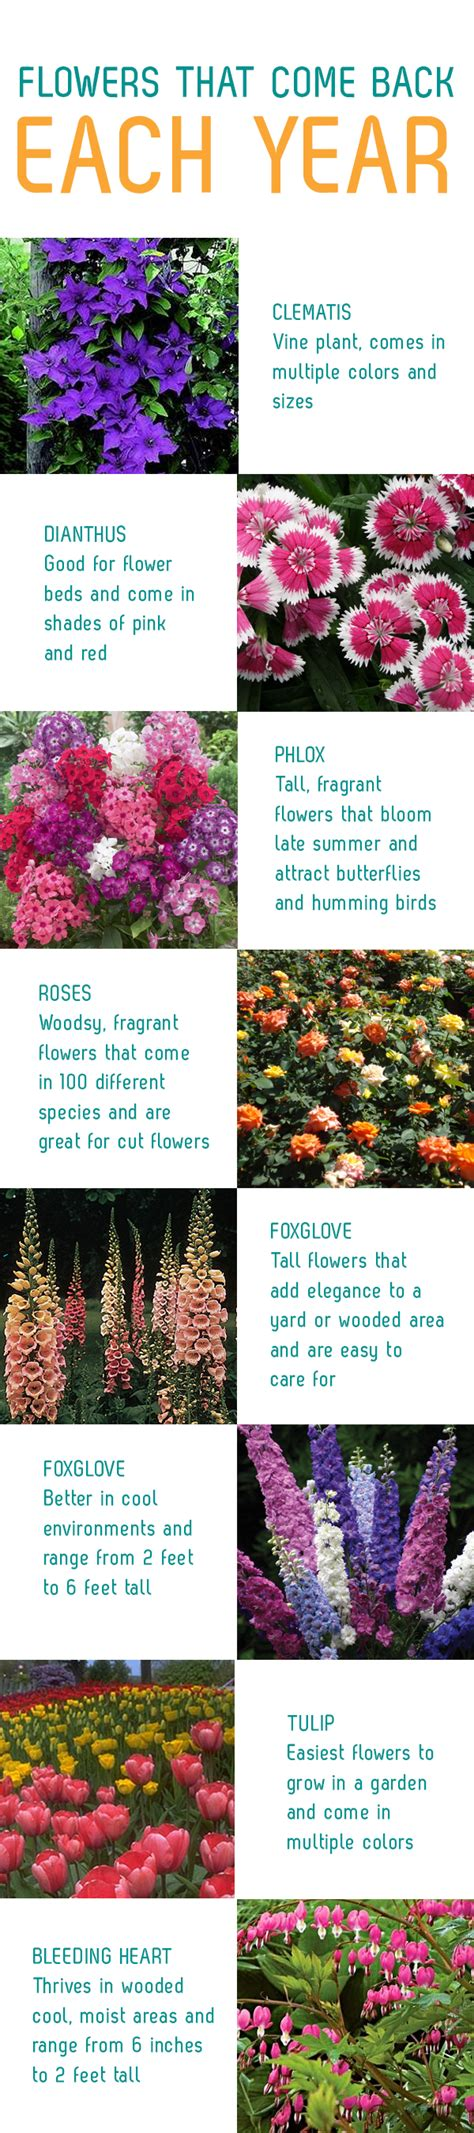 list of flowers that come back every year flowers that come back each year sunny slide up